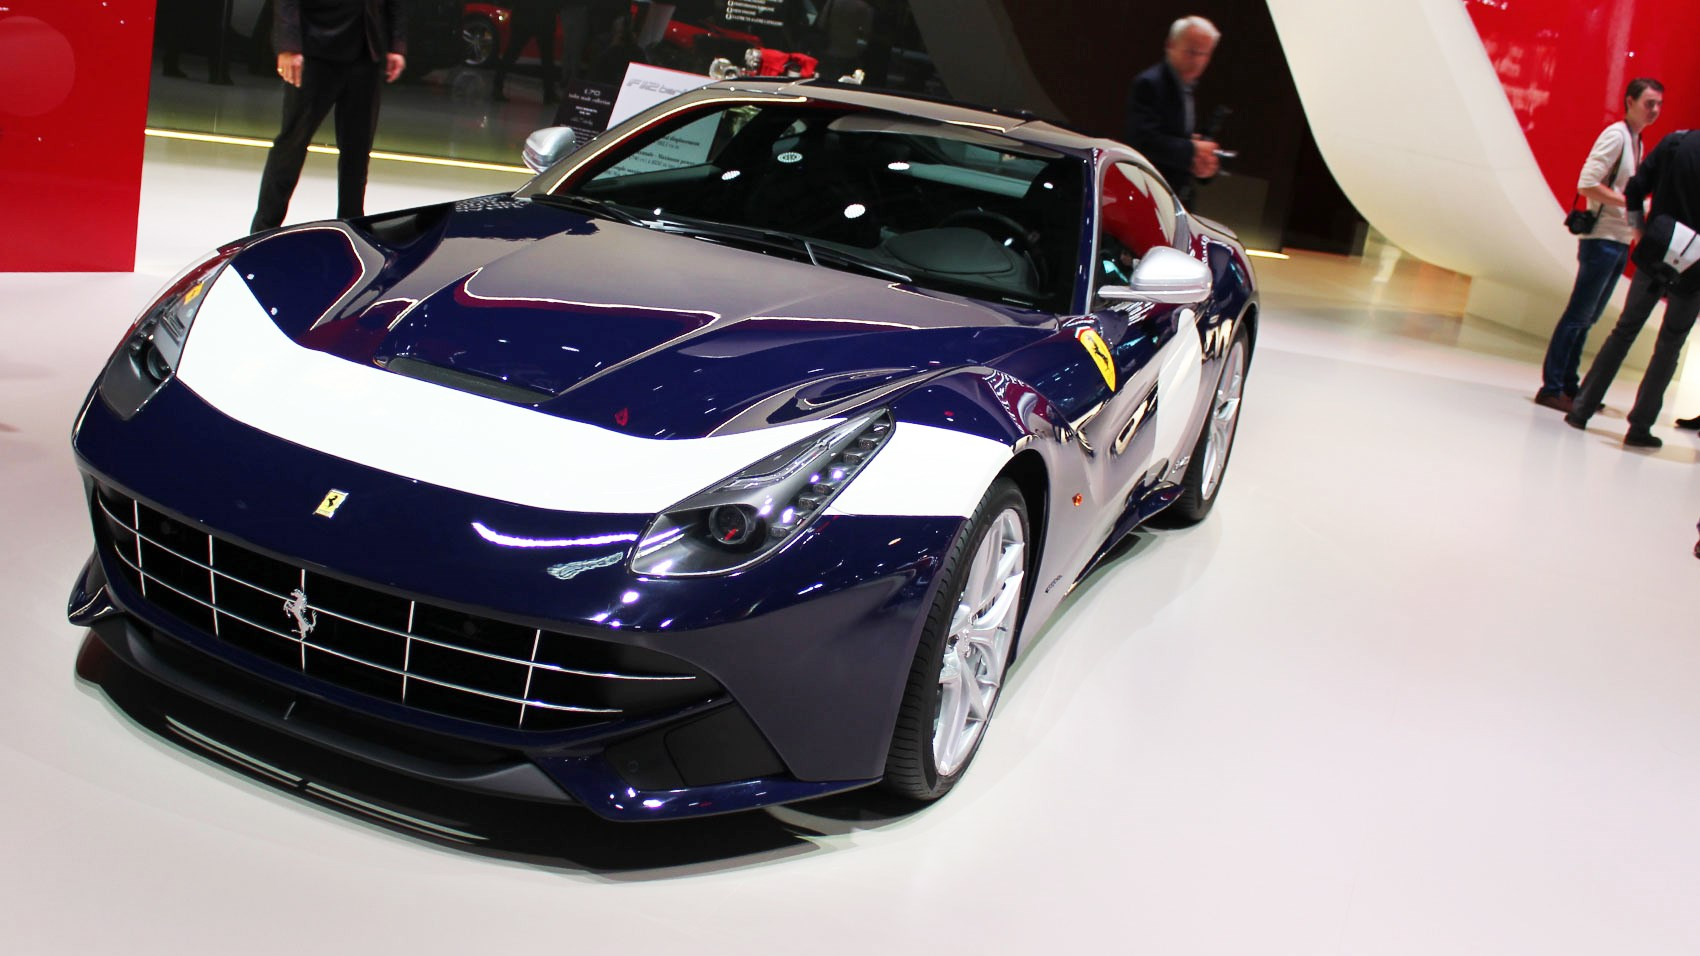 Ferrari Launches Year Anniversary Models At Paris CAR Magazine - Ferrari car show